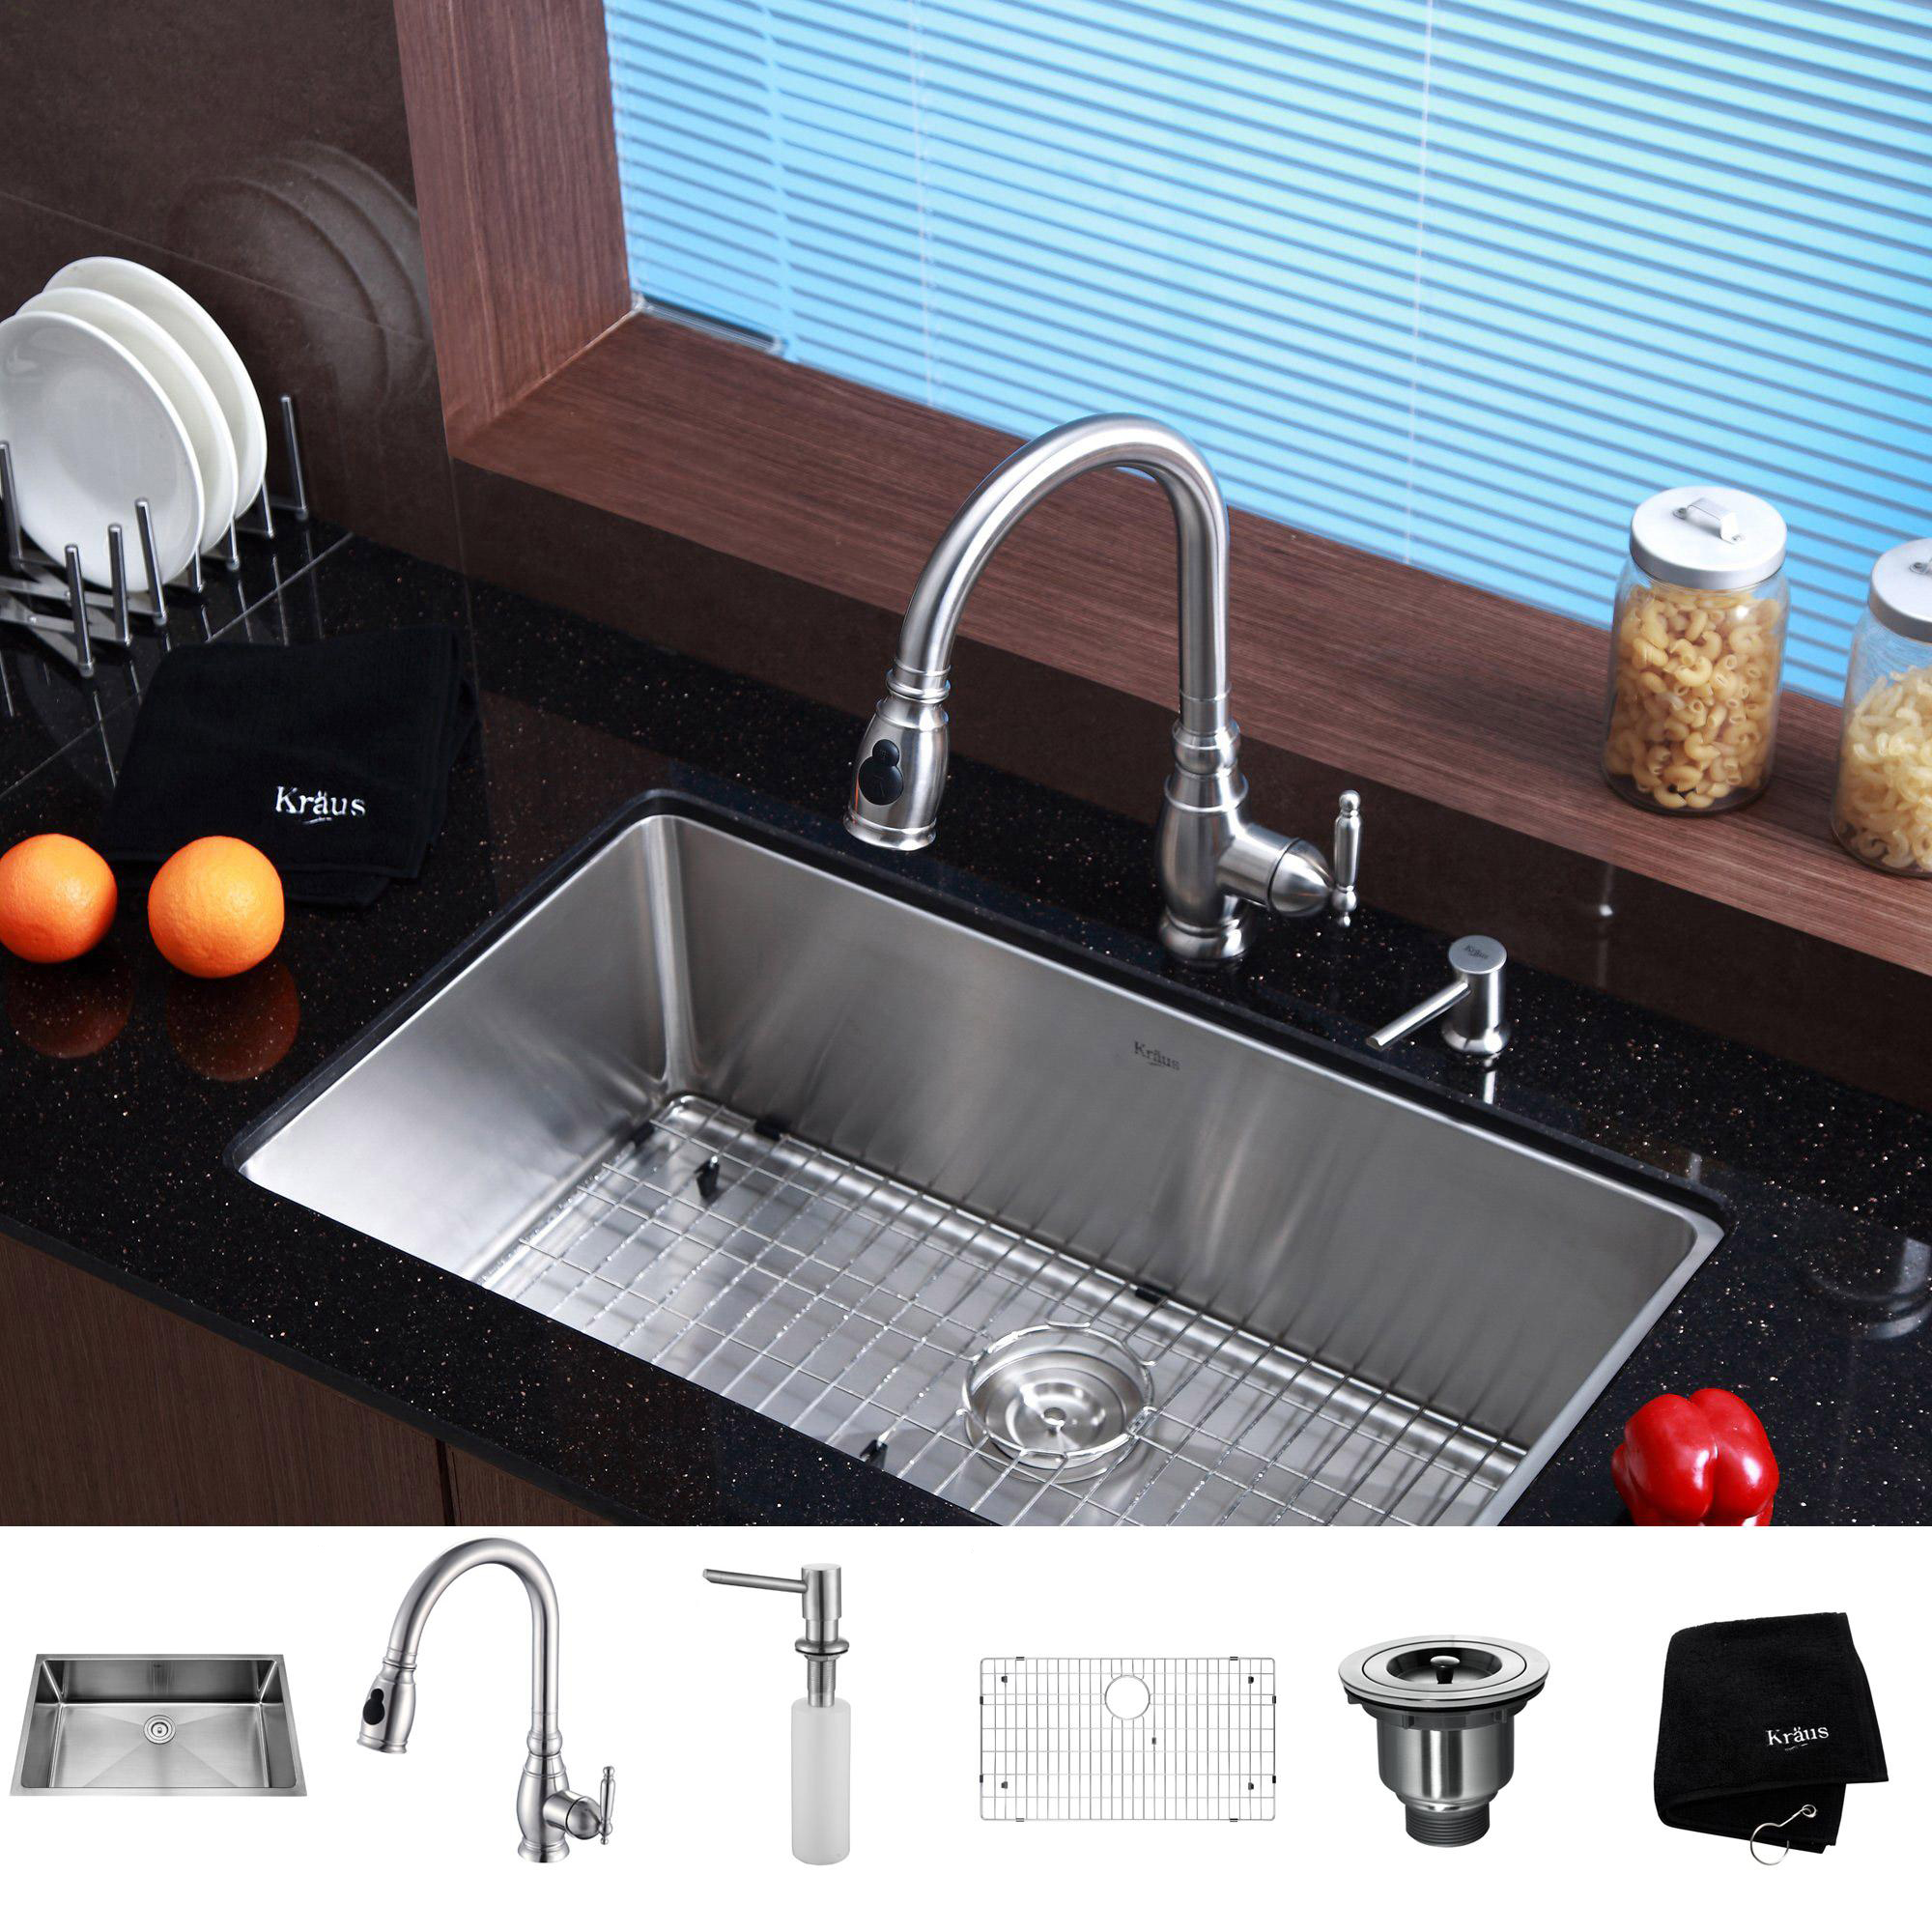 kitchen decor with kitchen cabinet with countertop and sink plus faucet before the window with bali blinds ideas